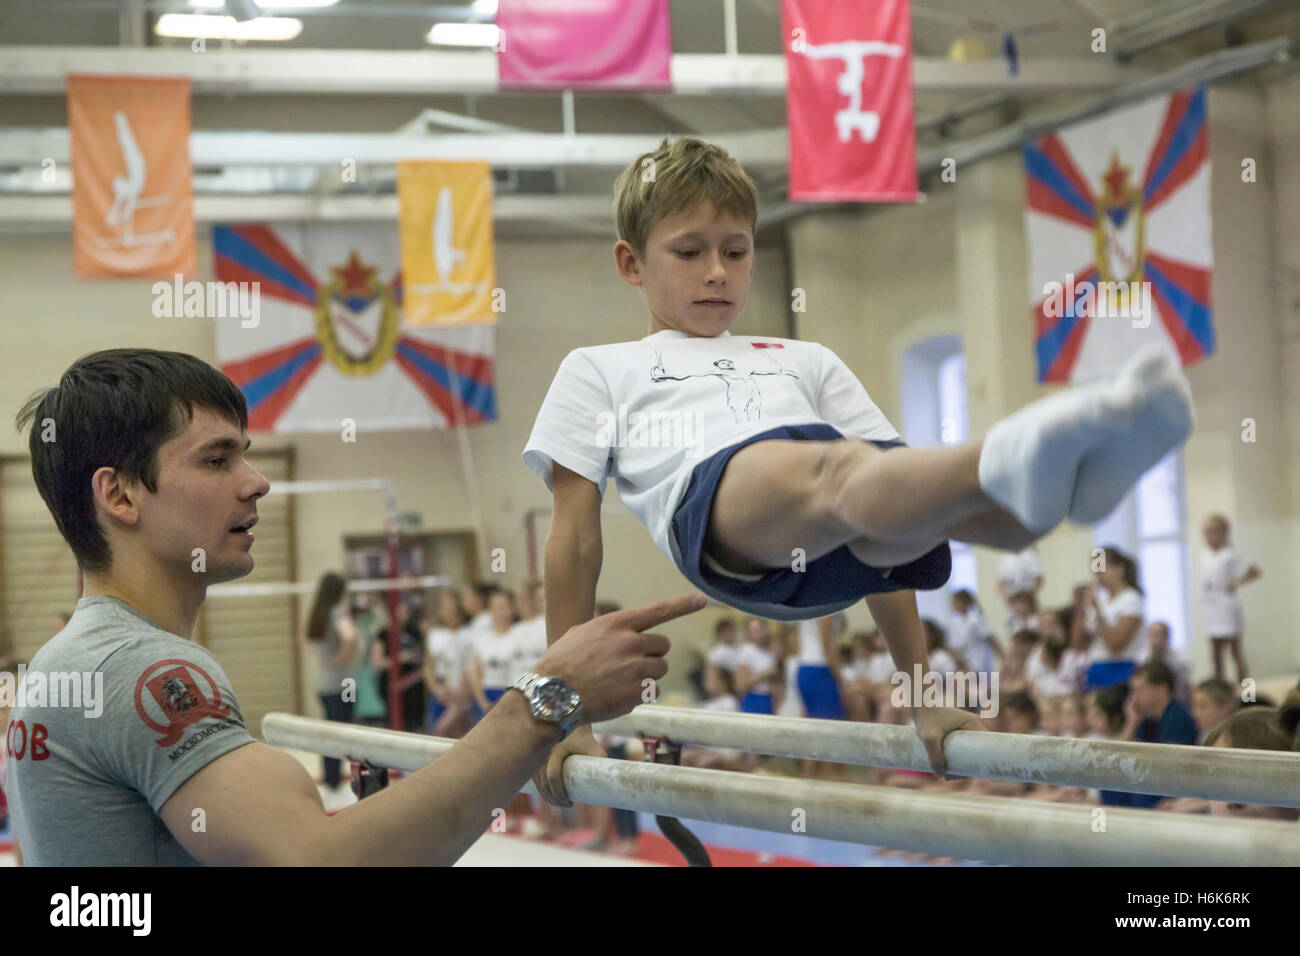 Russian gymnast Nikolai Kuksenkov (left) participates in a master class in gymnastics for children - Stock Image